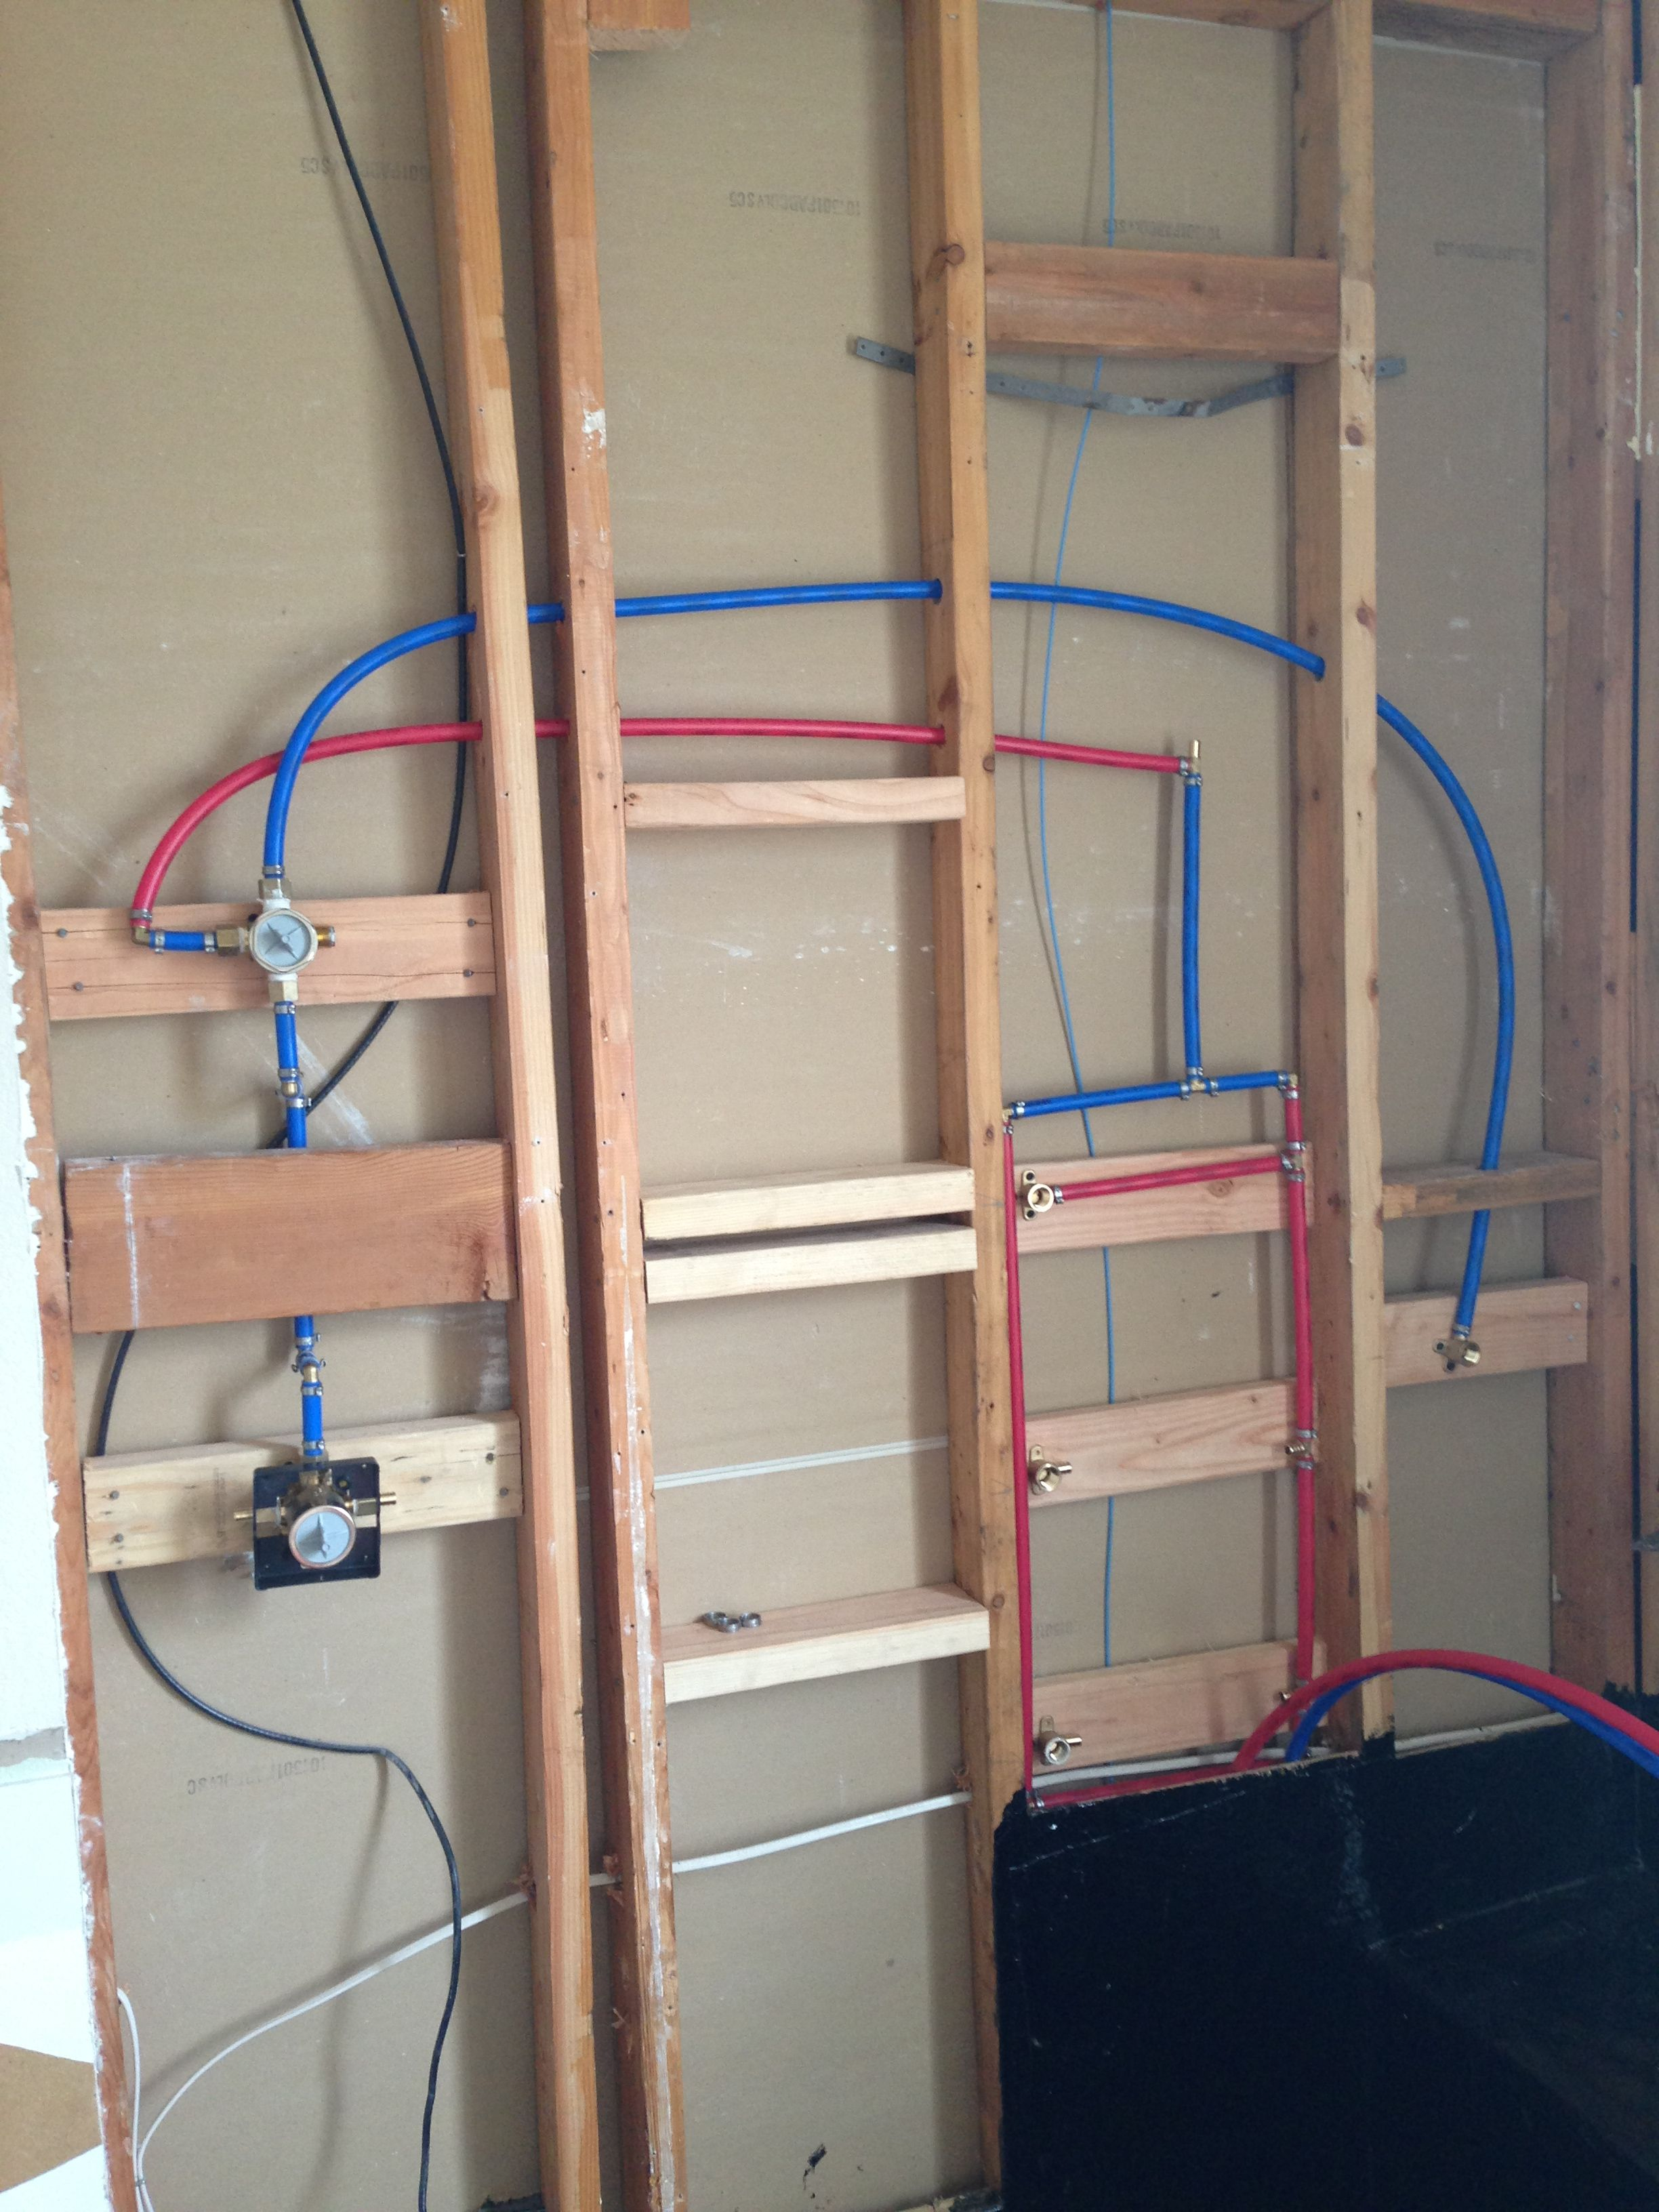 Plumbing The Shower With Pex...